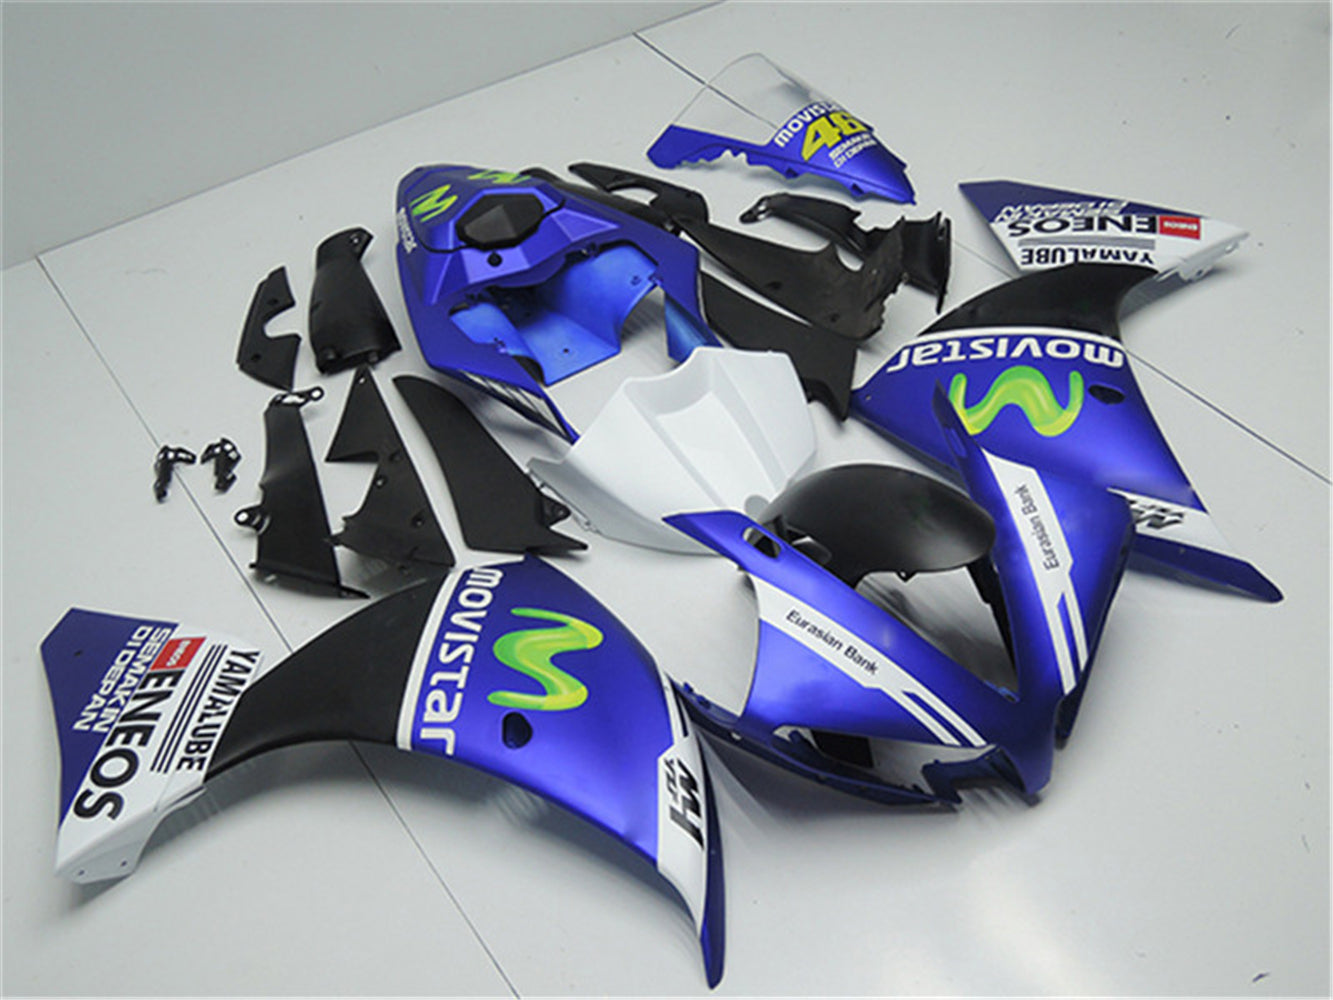 NT Aftermarket Injection ABS Plastic Fairing Fit for YZF R1 2012-2014 Blue White Black N002